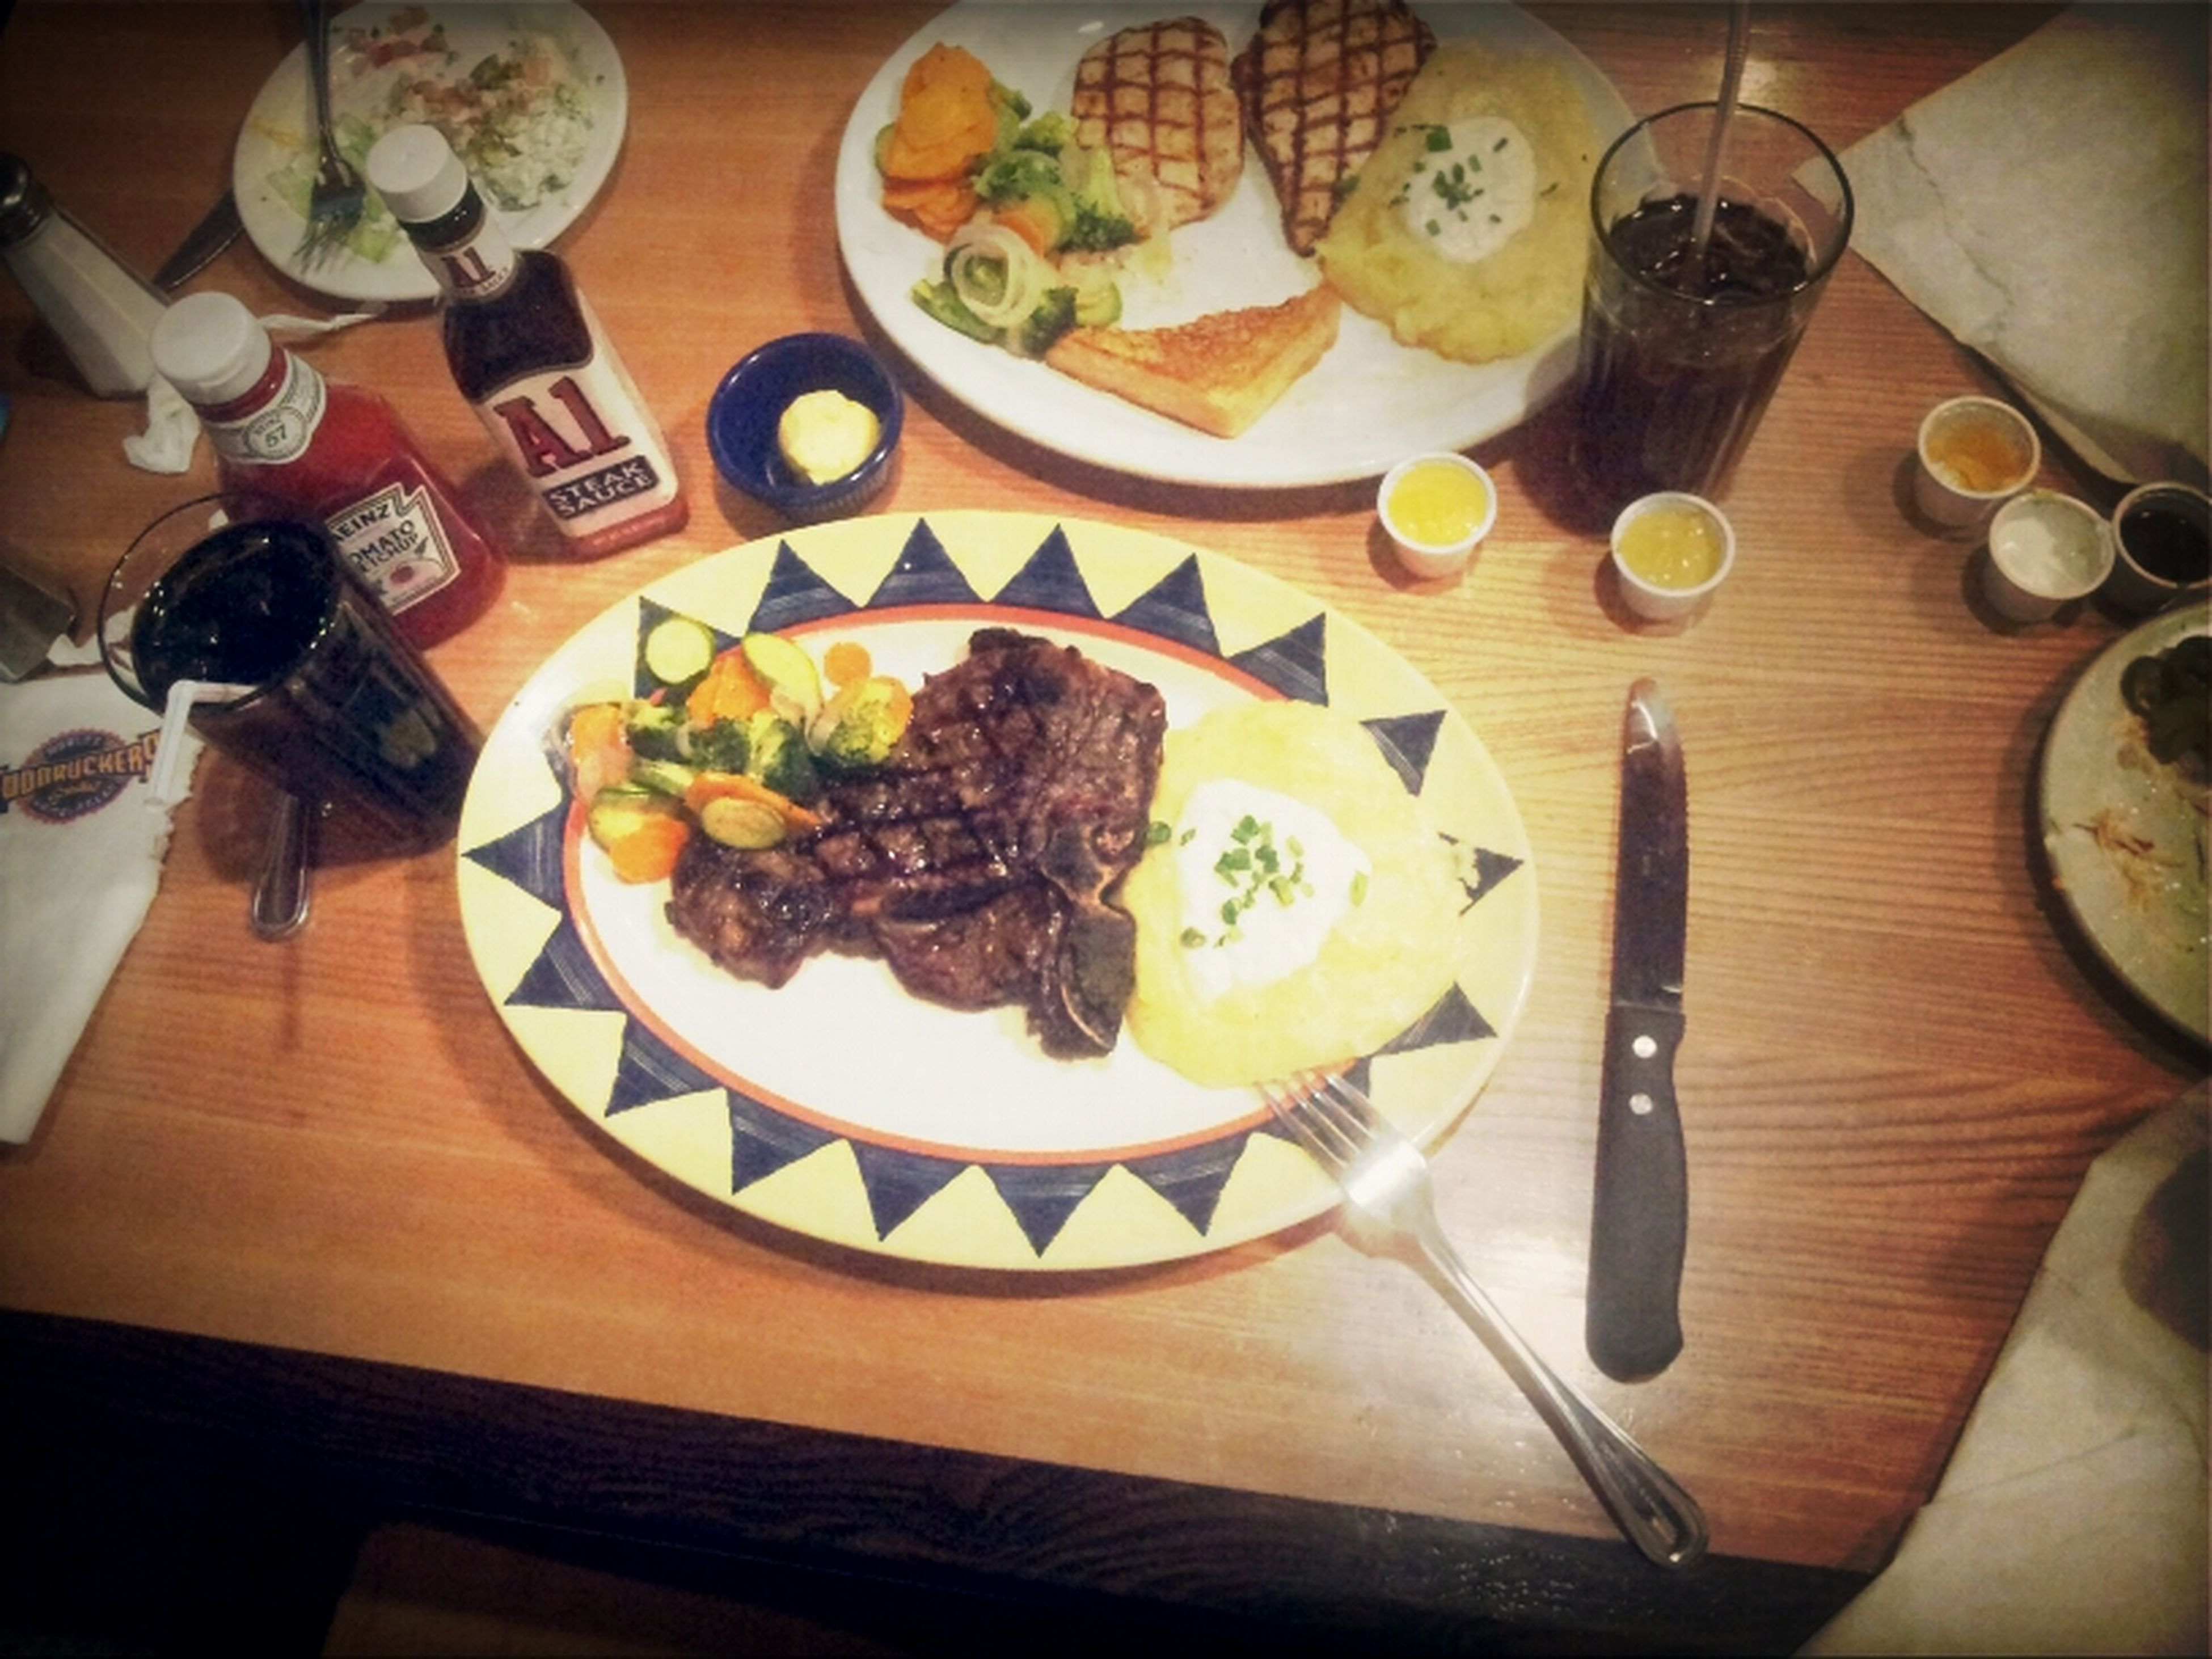 indoors, food and drink, food, table, freshness, plate, ready-to-eat, still life, fork, healthy eating, high angle view, meal, serving size, served, indulgence, wood - material, restaurant, meat, table knife, seafood